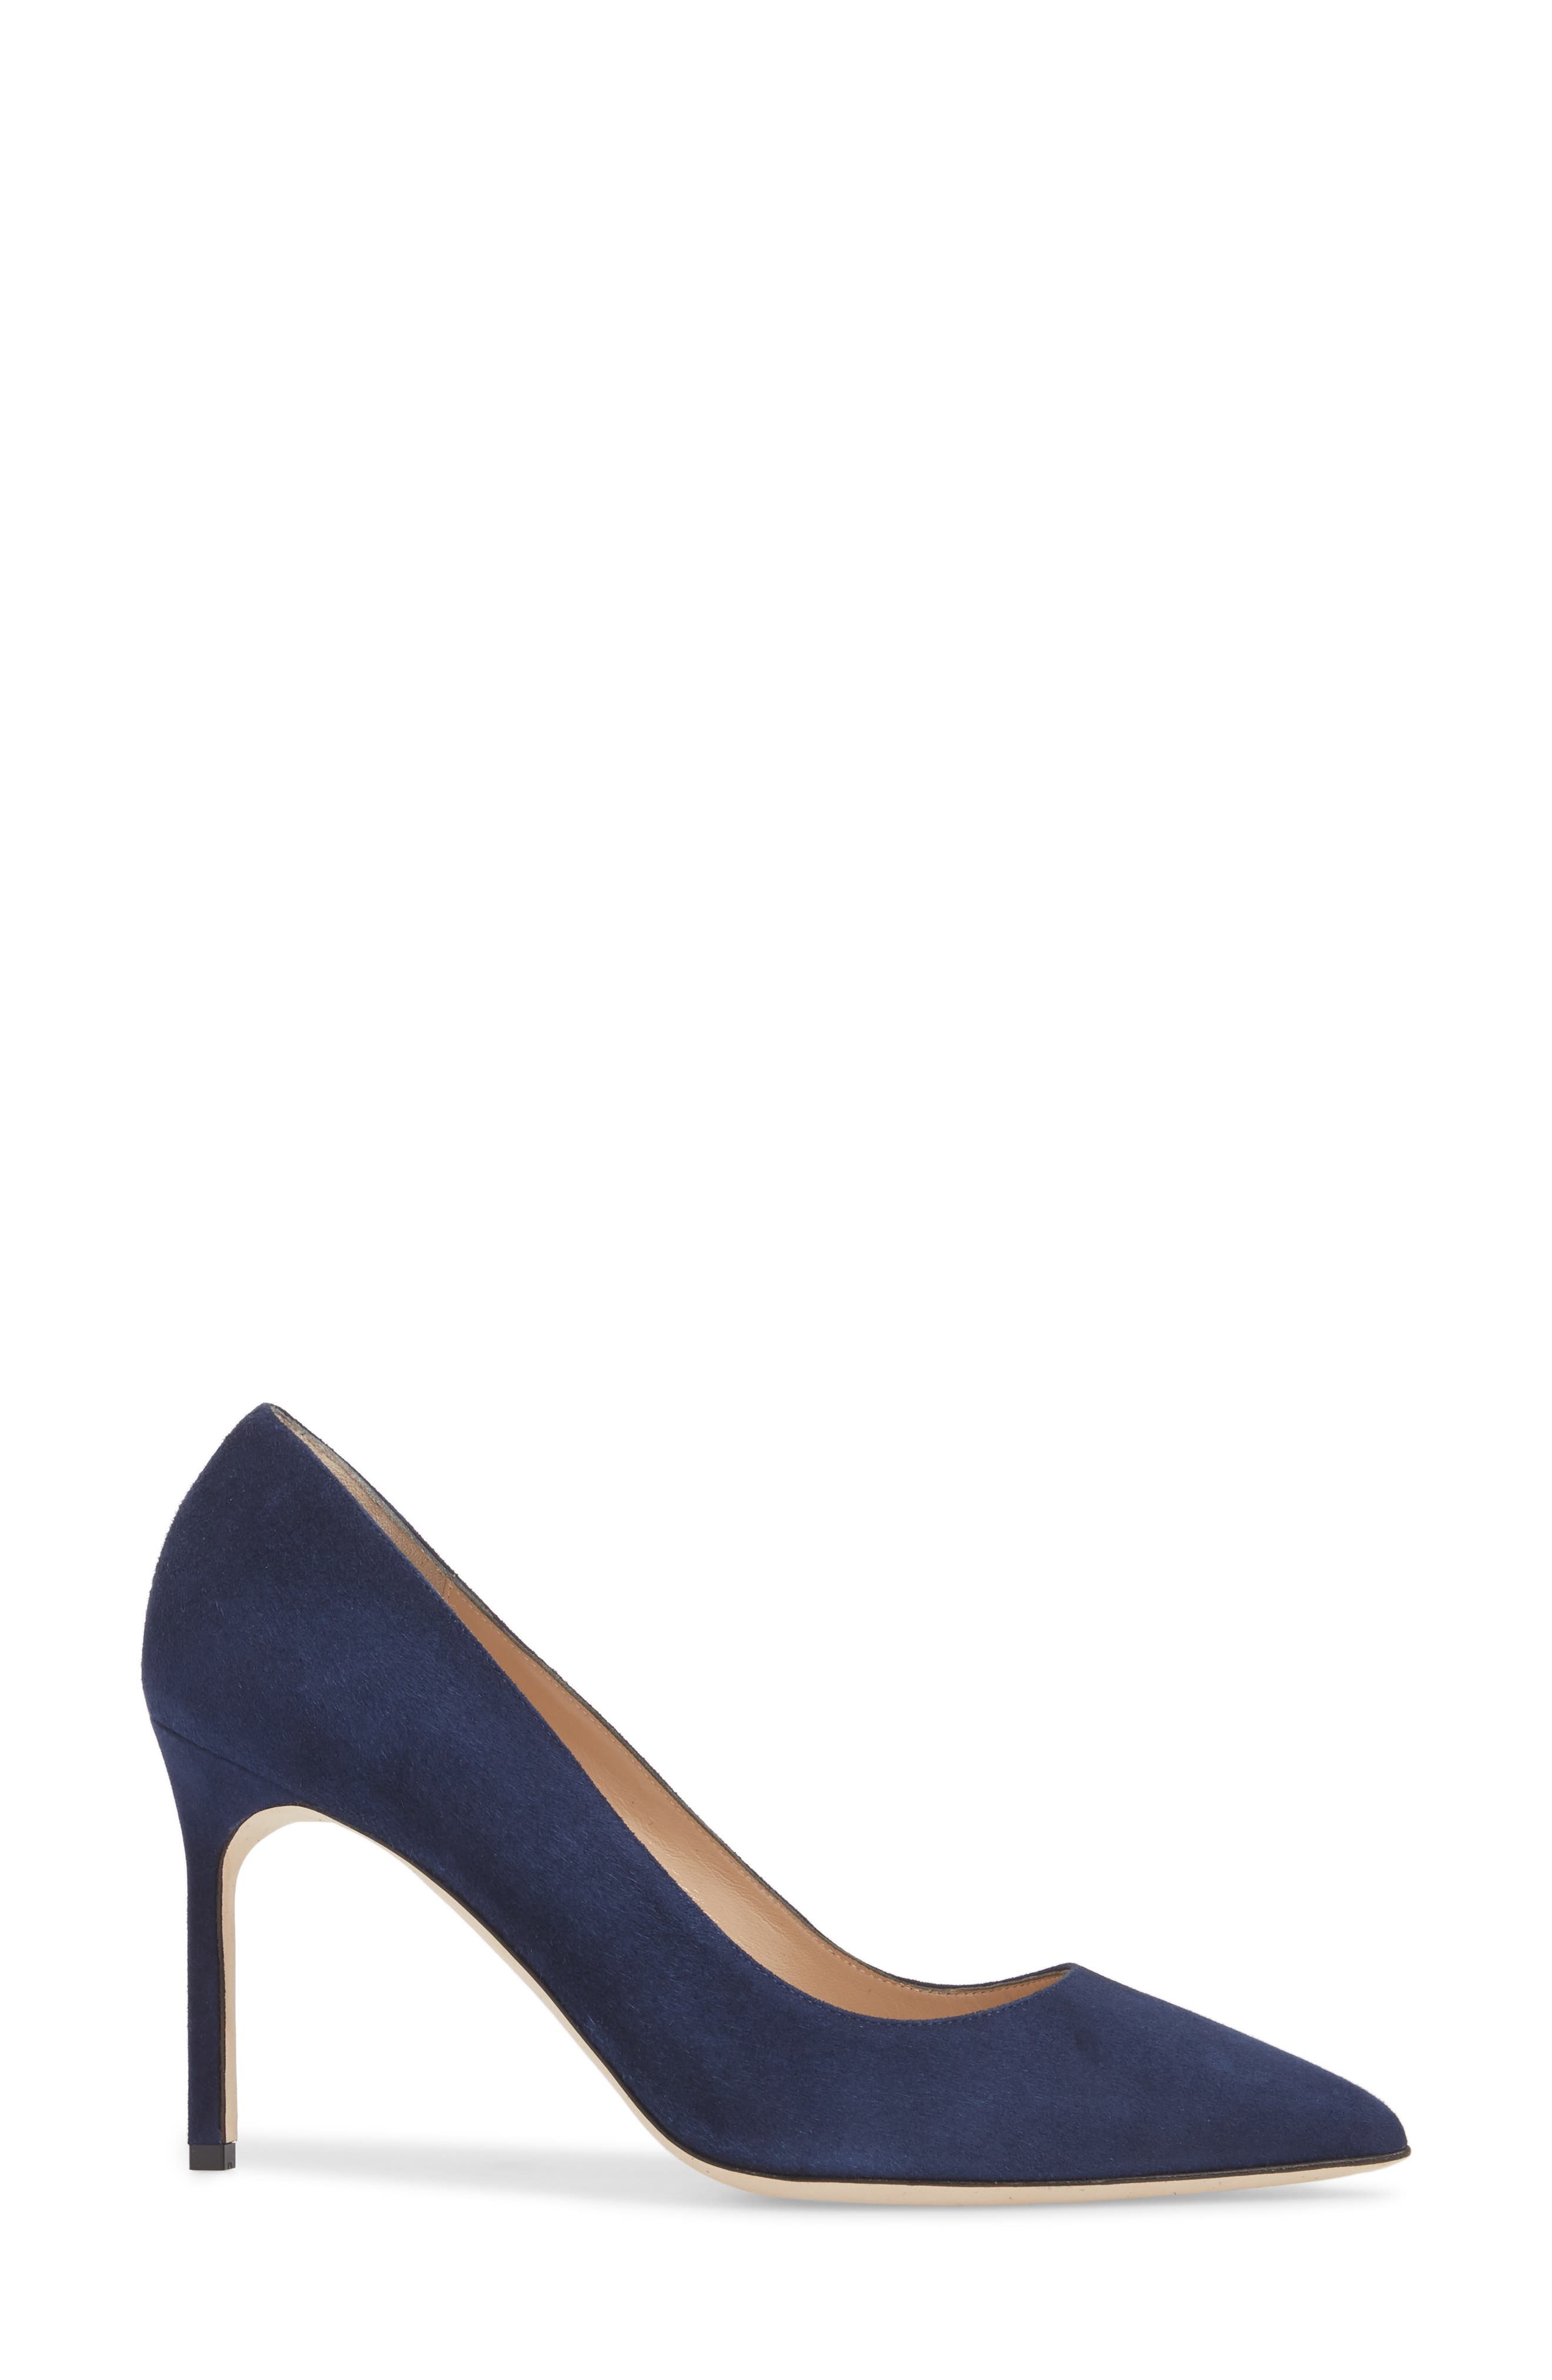 BB Pointy Toe Pump,                             Alternate thumbnail 3, color,                             NAVY SUEDE